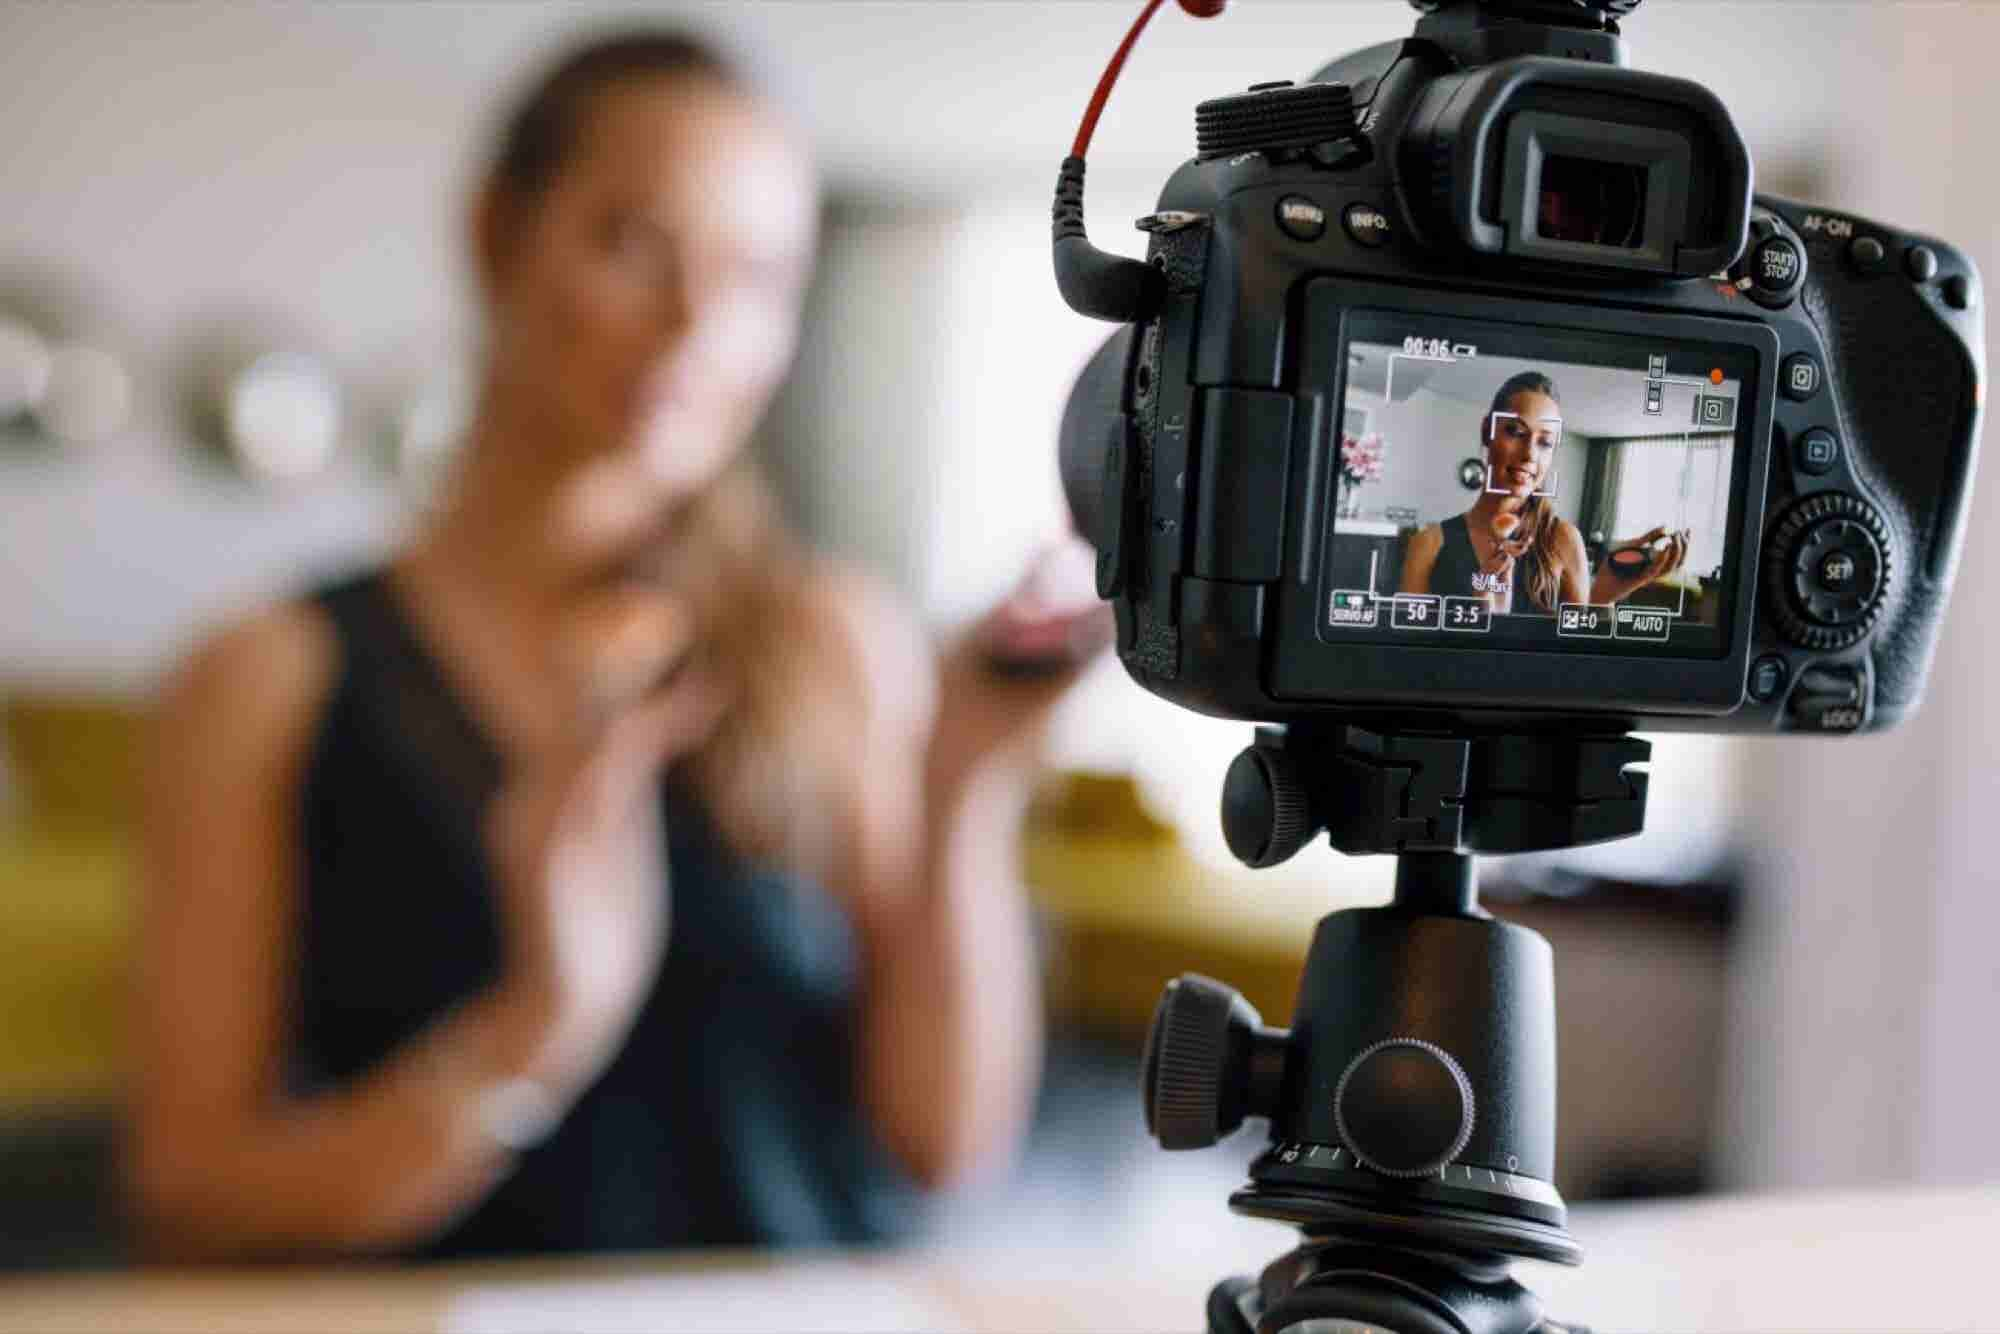 5 Tips for Creating Quality Video Content Even If You're Clueless How to Begin